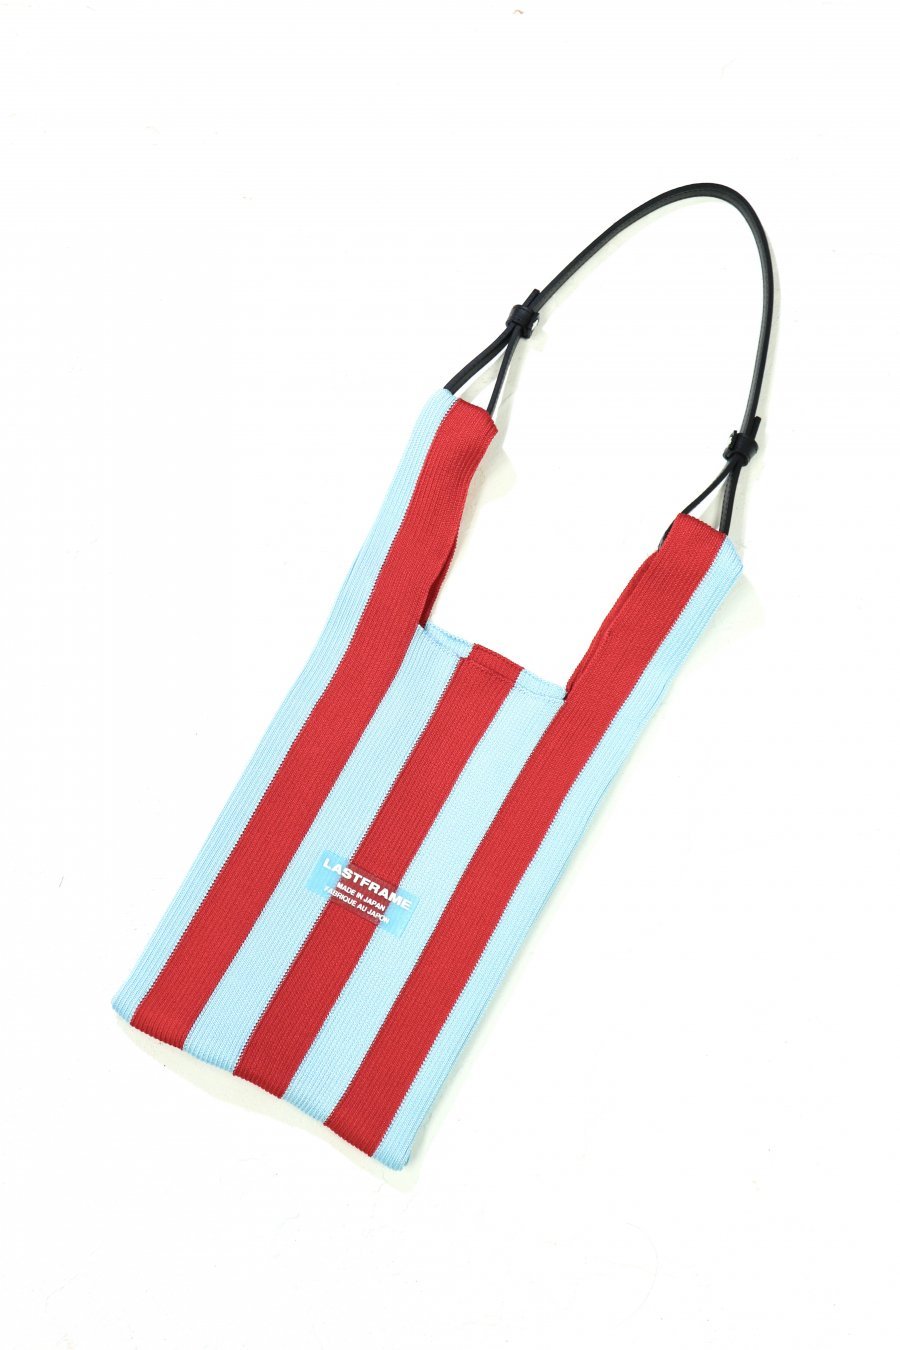 LASTFRAME  STRIPE MARKET BAG(RED x AQUA)<img class='new_mark_img2' src='https://img.shop-pro.jp/img/new/icons15.gif' style='border:none;display:inline;margin:0px;padding:0px;width:auto;' />